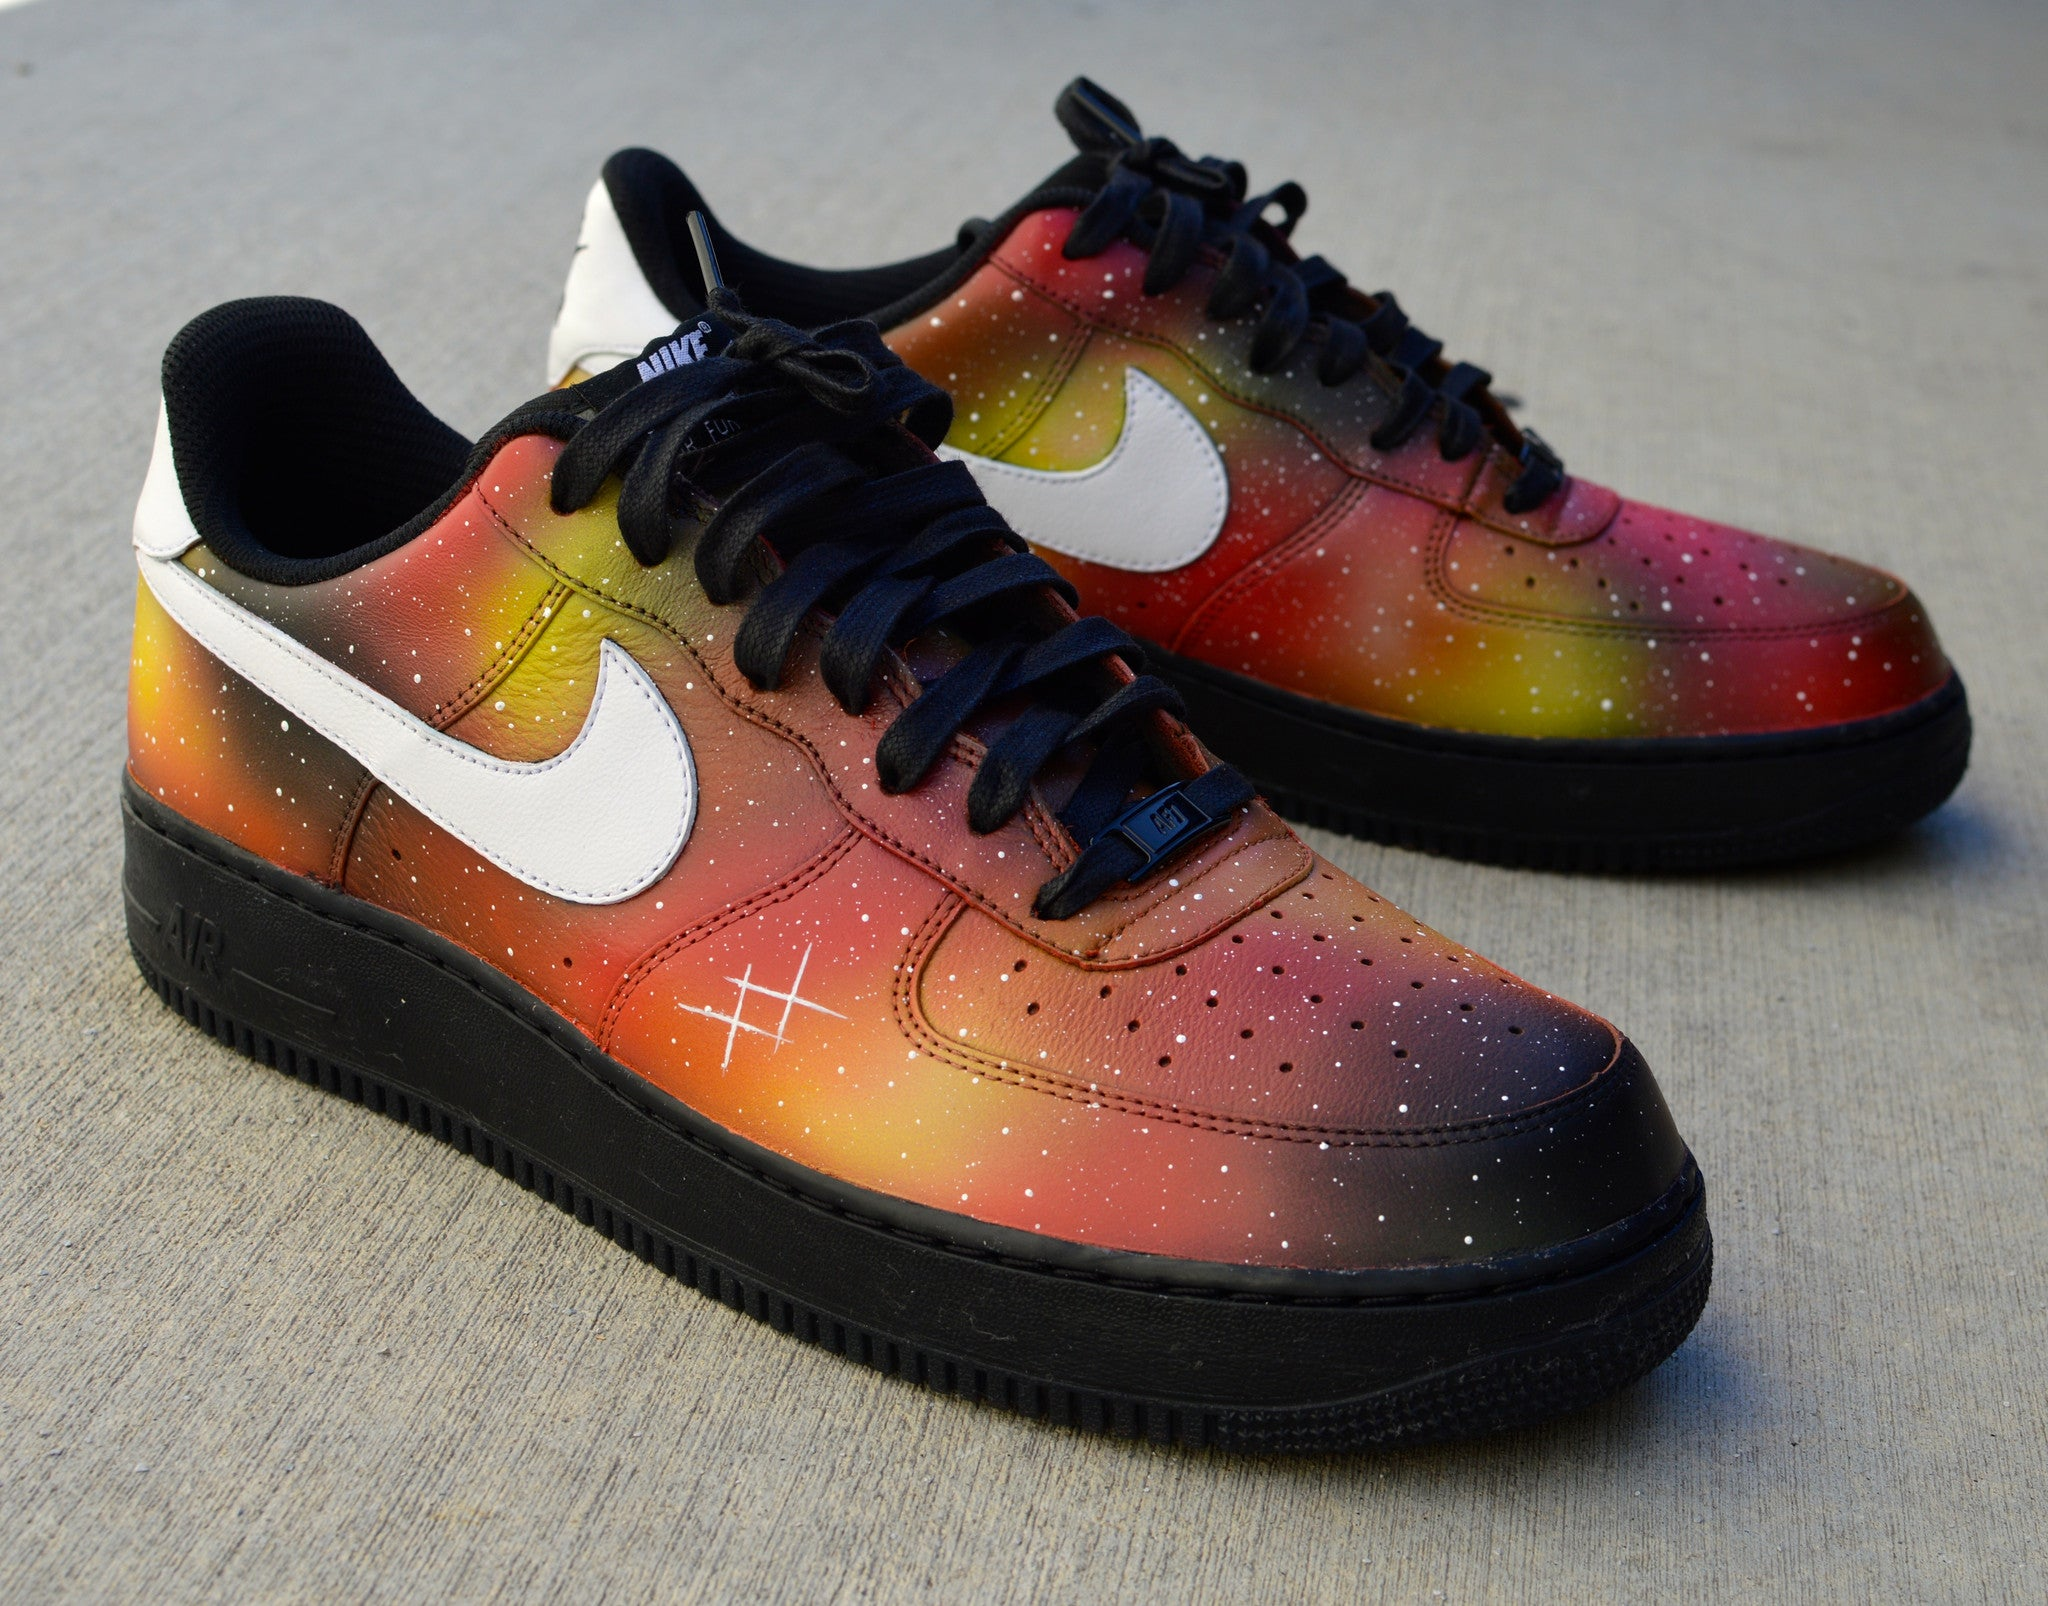 Buy Custom Air Force Ones Up To 61 Discounts